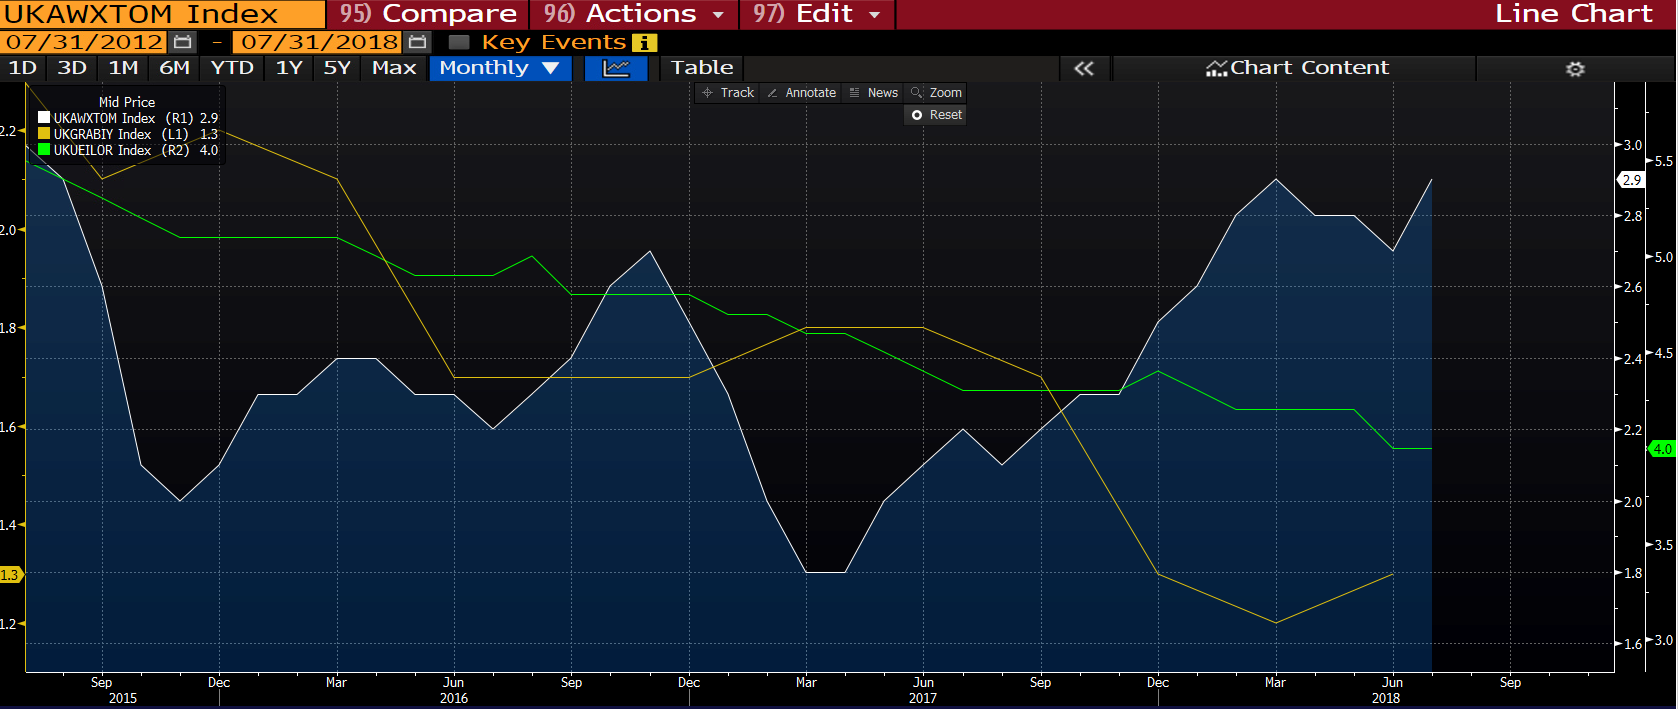 Chart shows UK GDP, Wages and Unemployment rate improvement